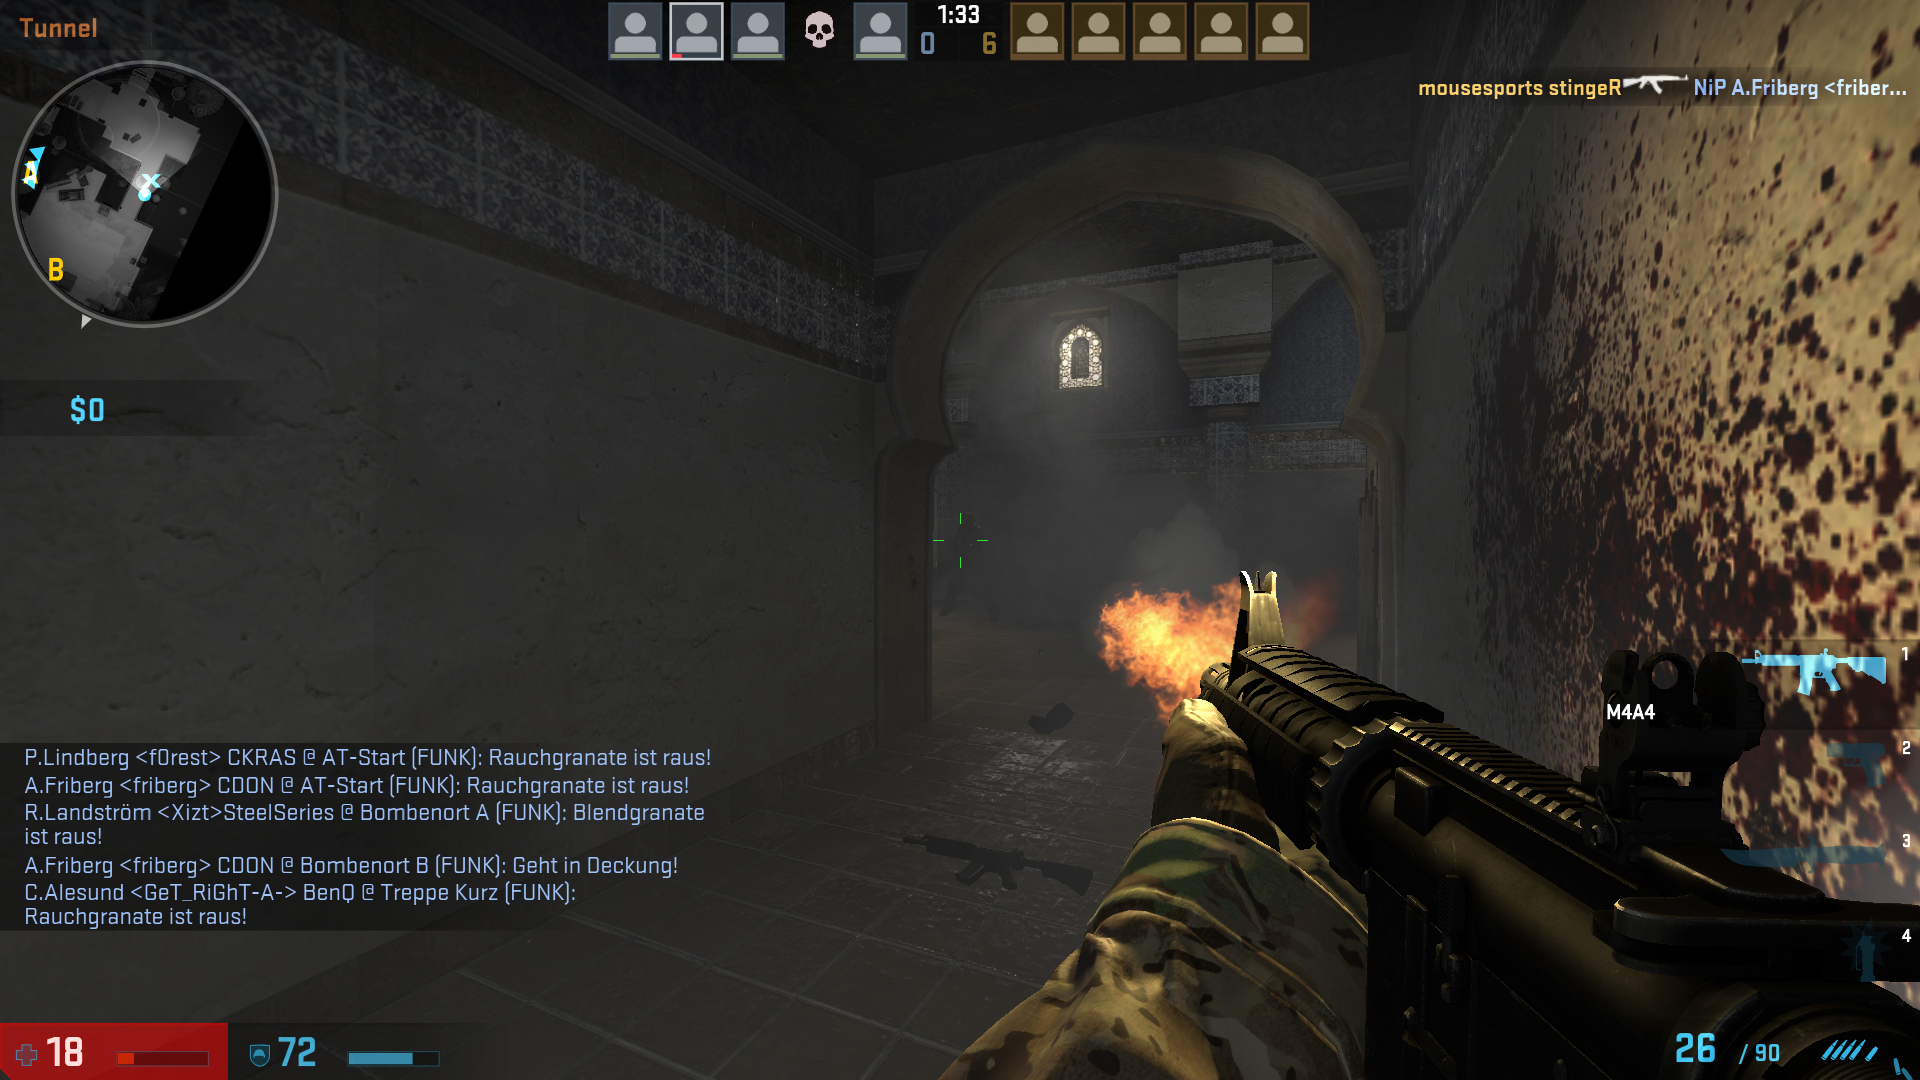 how to change hud color in csgo